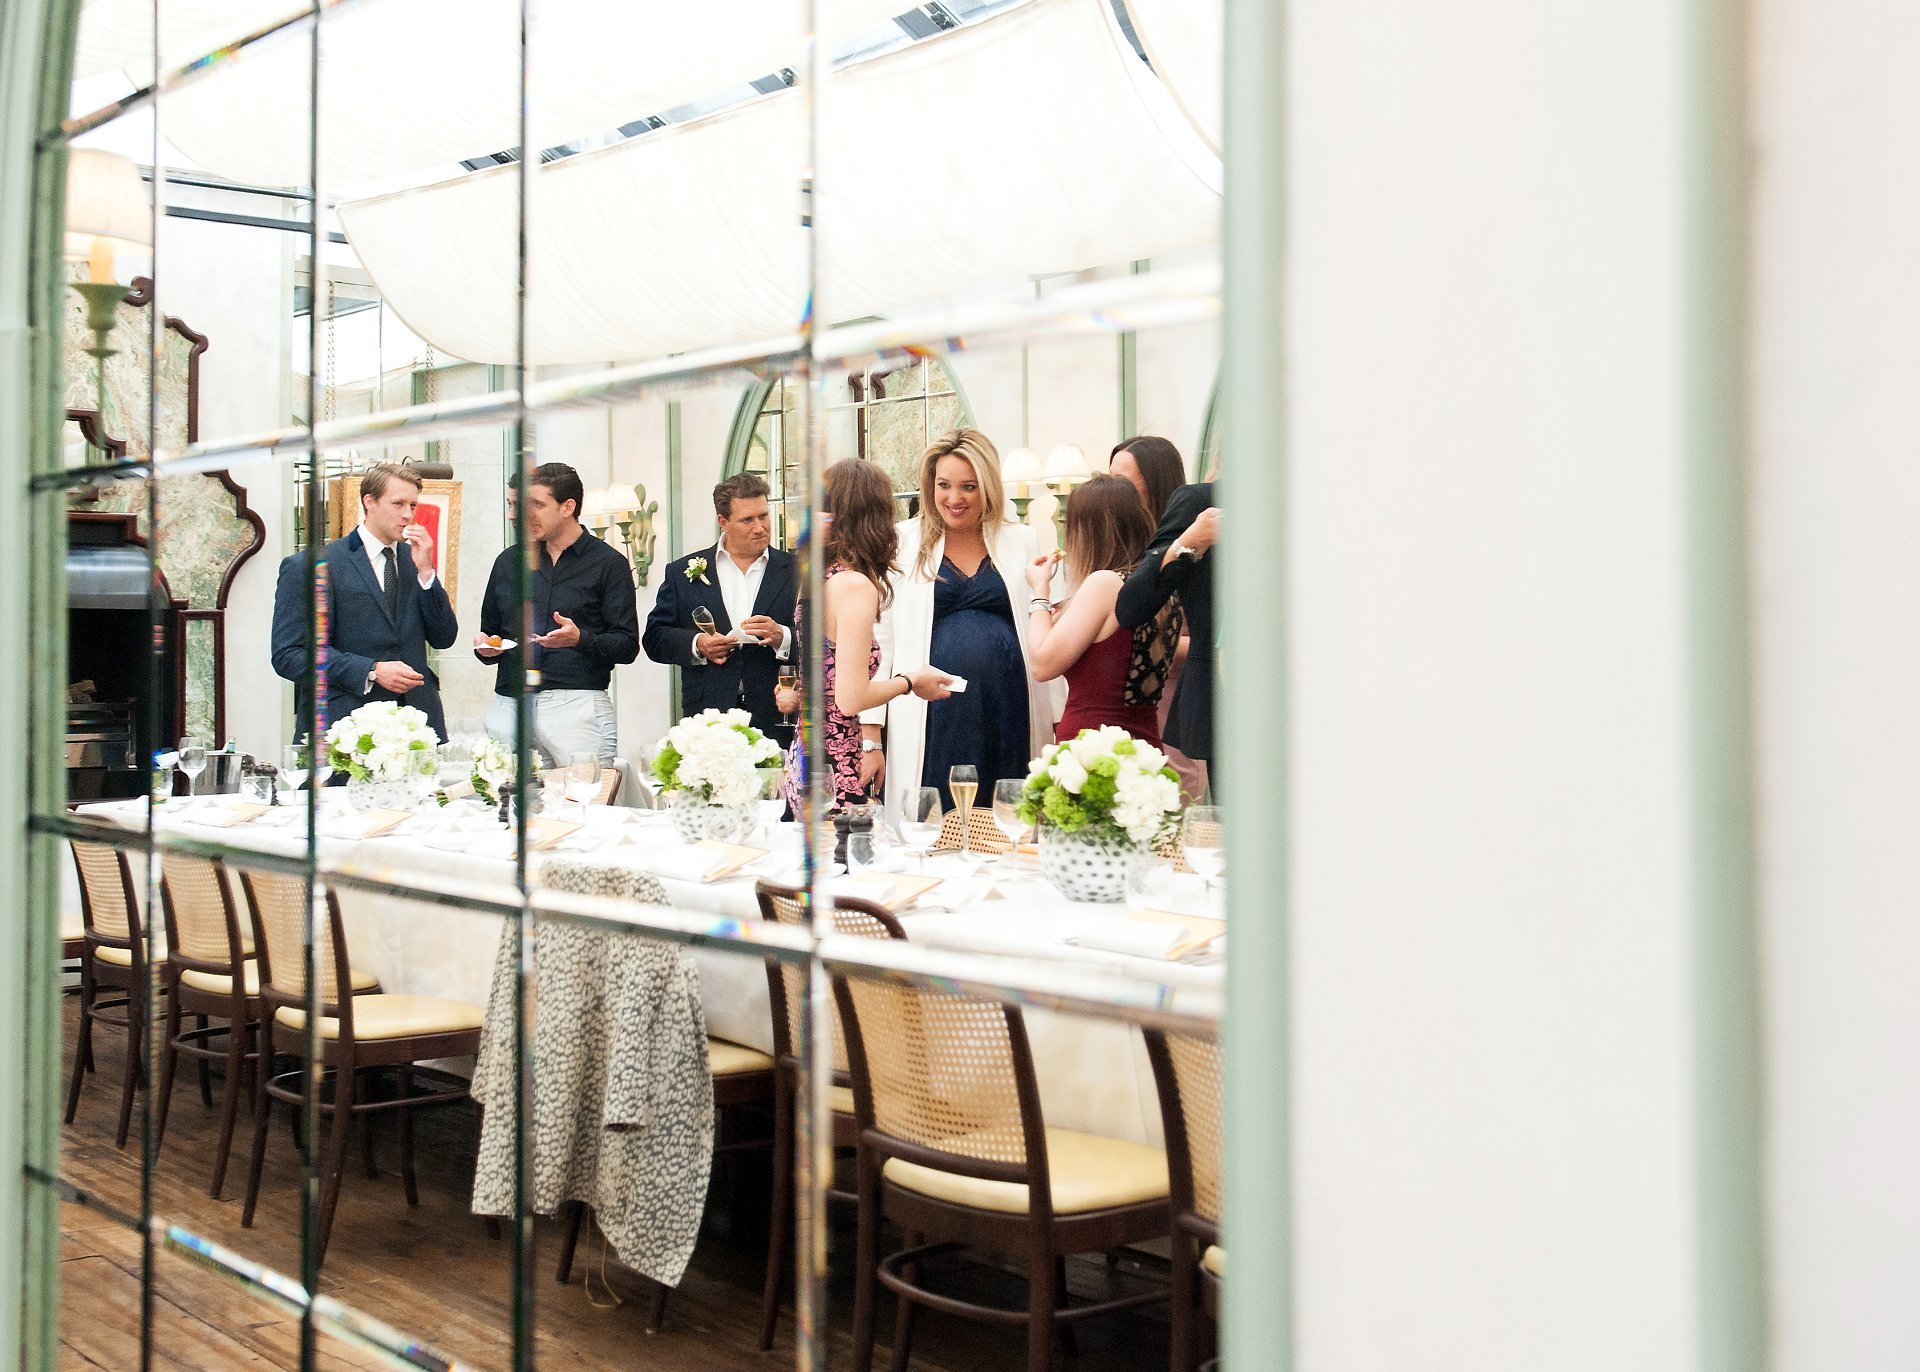 Guests enjoying the private Daphne's Conservatory during a wedding reception